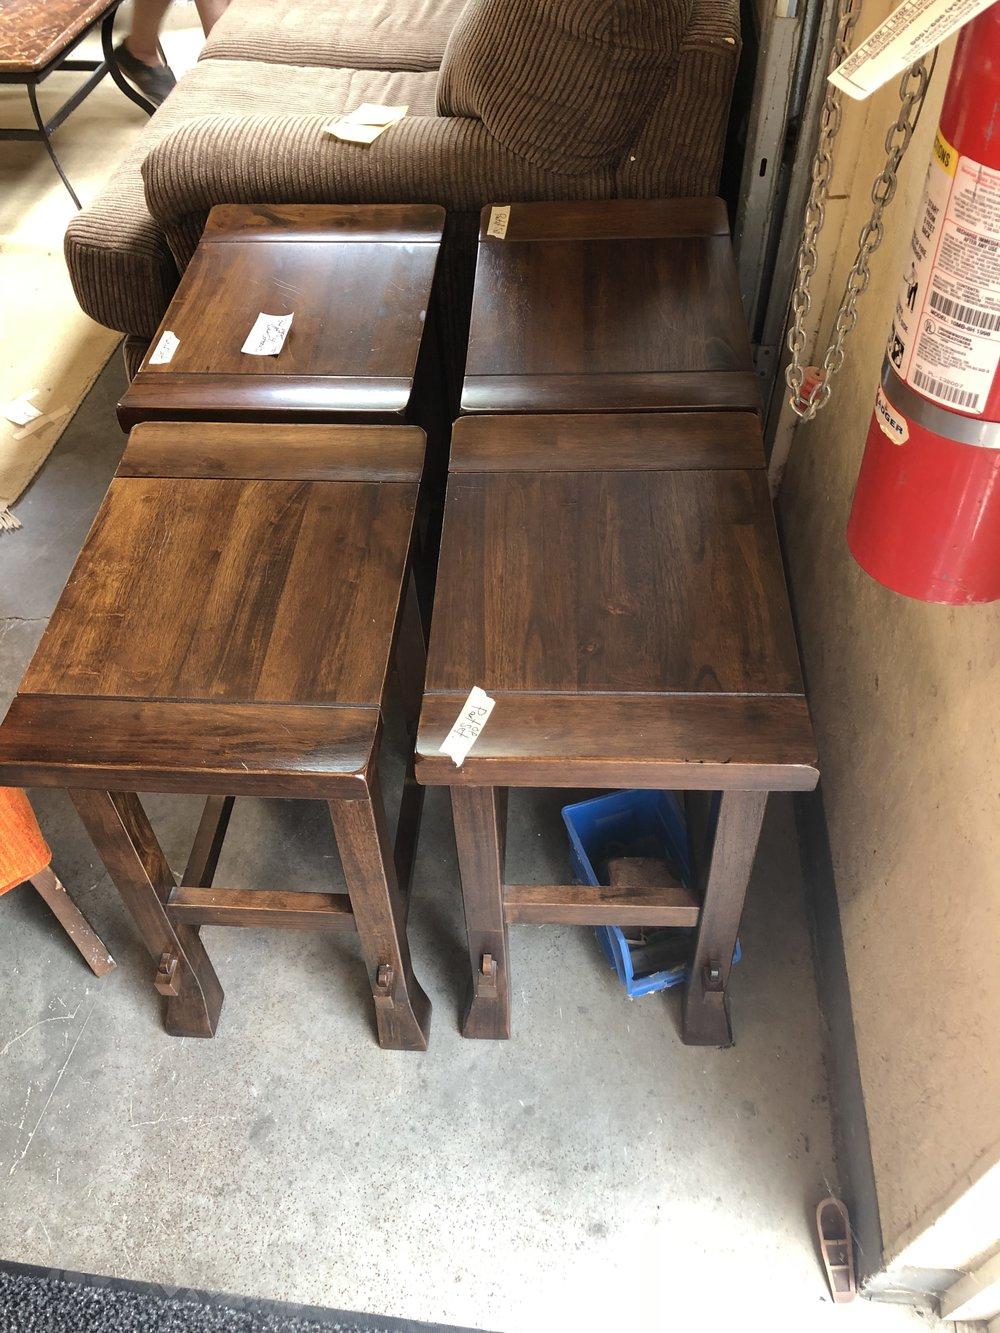 We found some barstools for our kitchen bar AND they work as end tables!